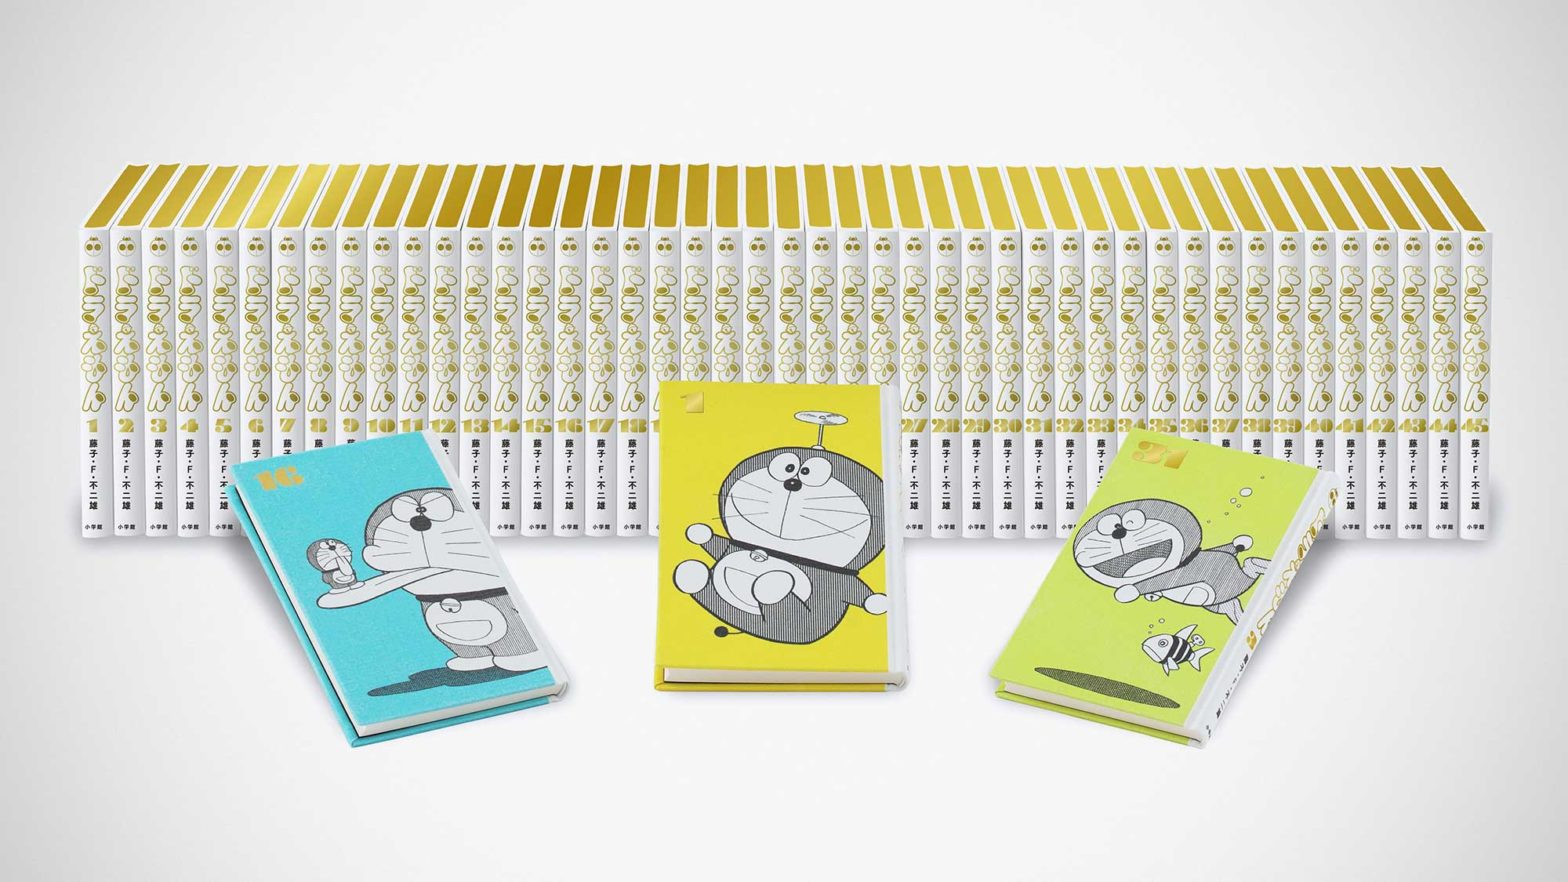 Doraemon Manga Set Collector's Edition